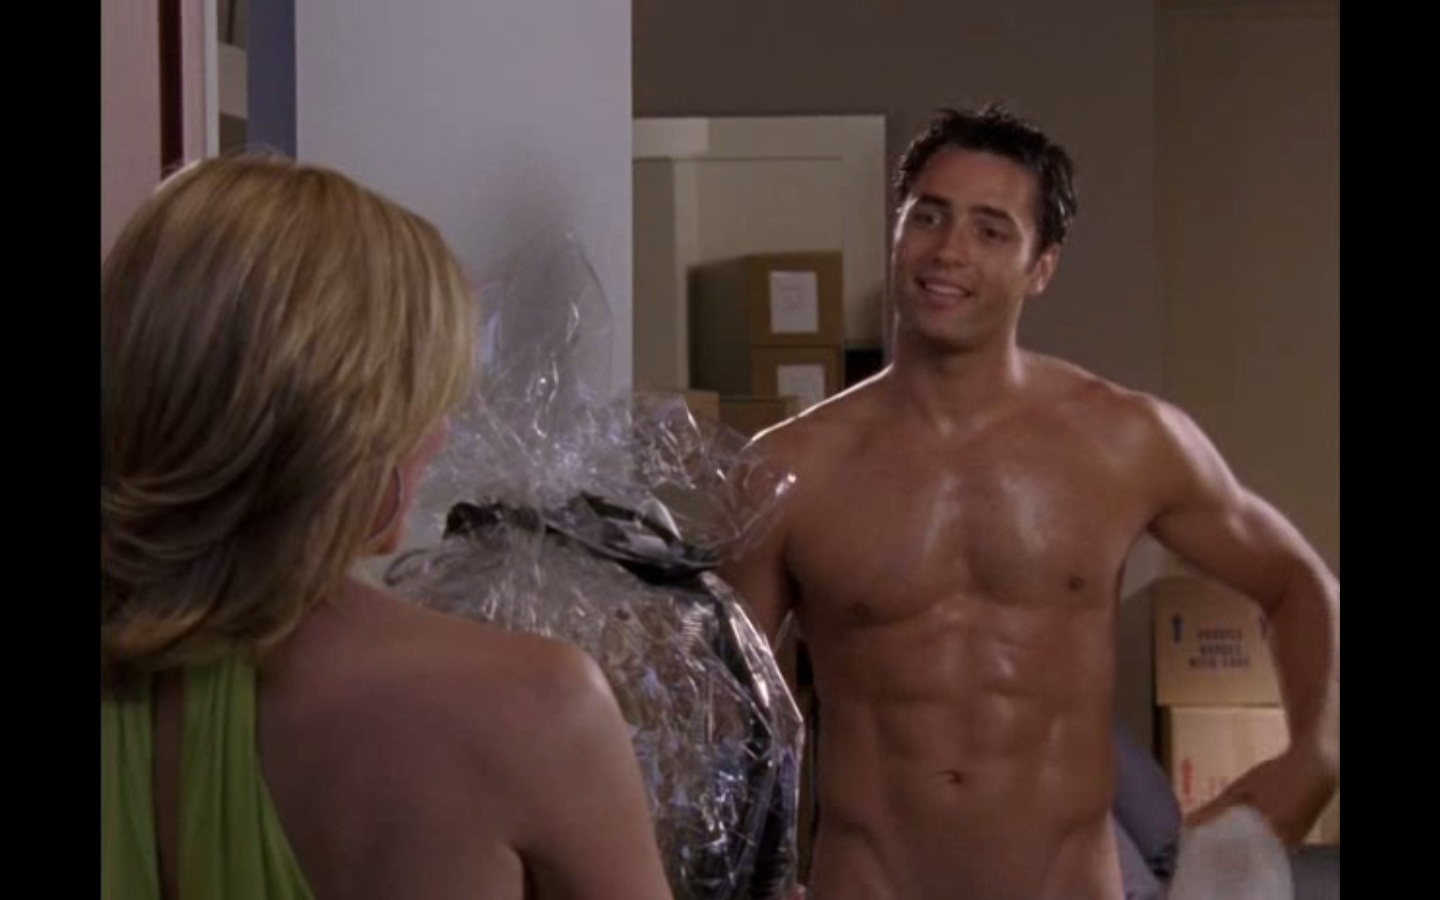 Naked Male Actors naked actors archives - male celebs blog